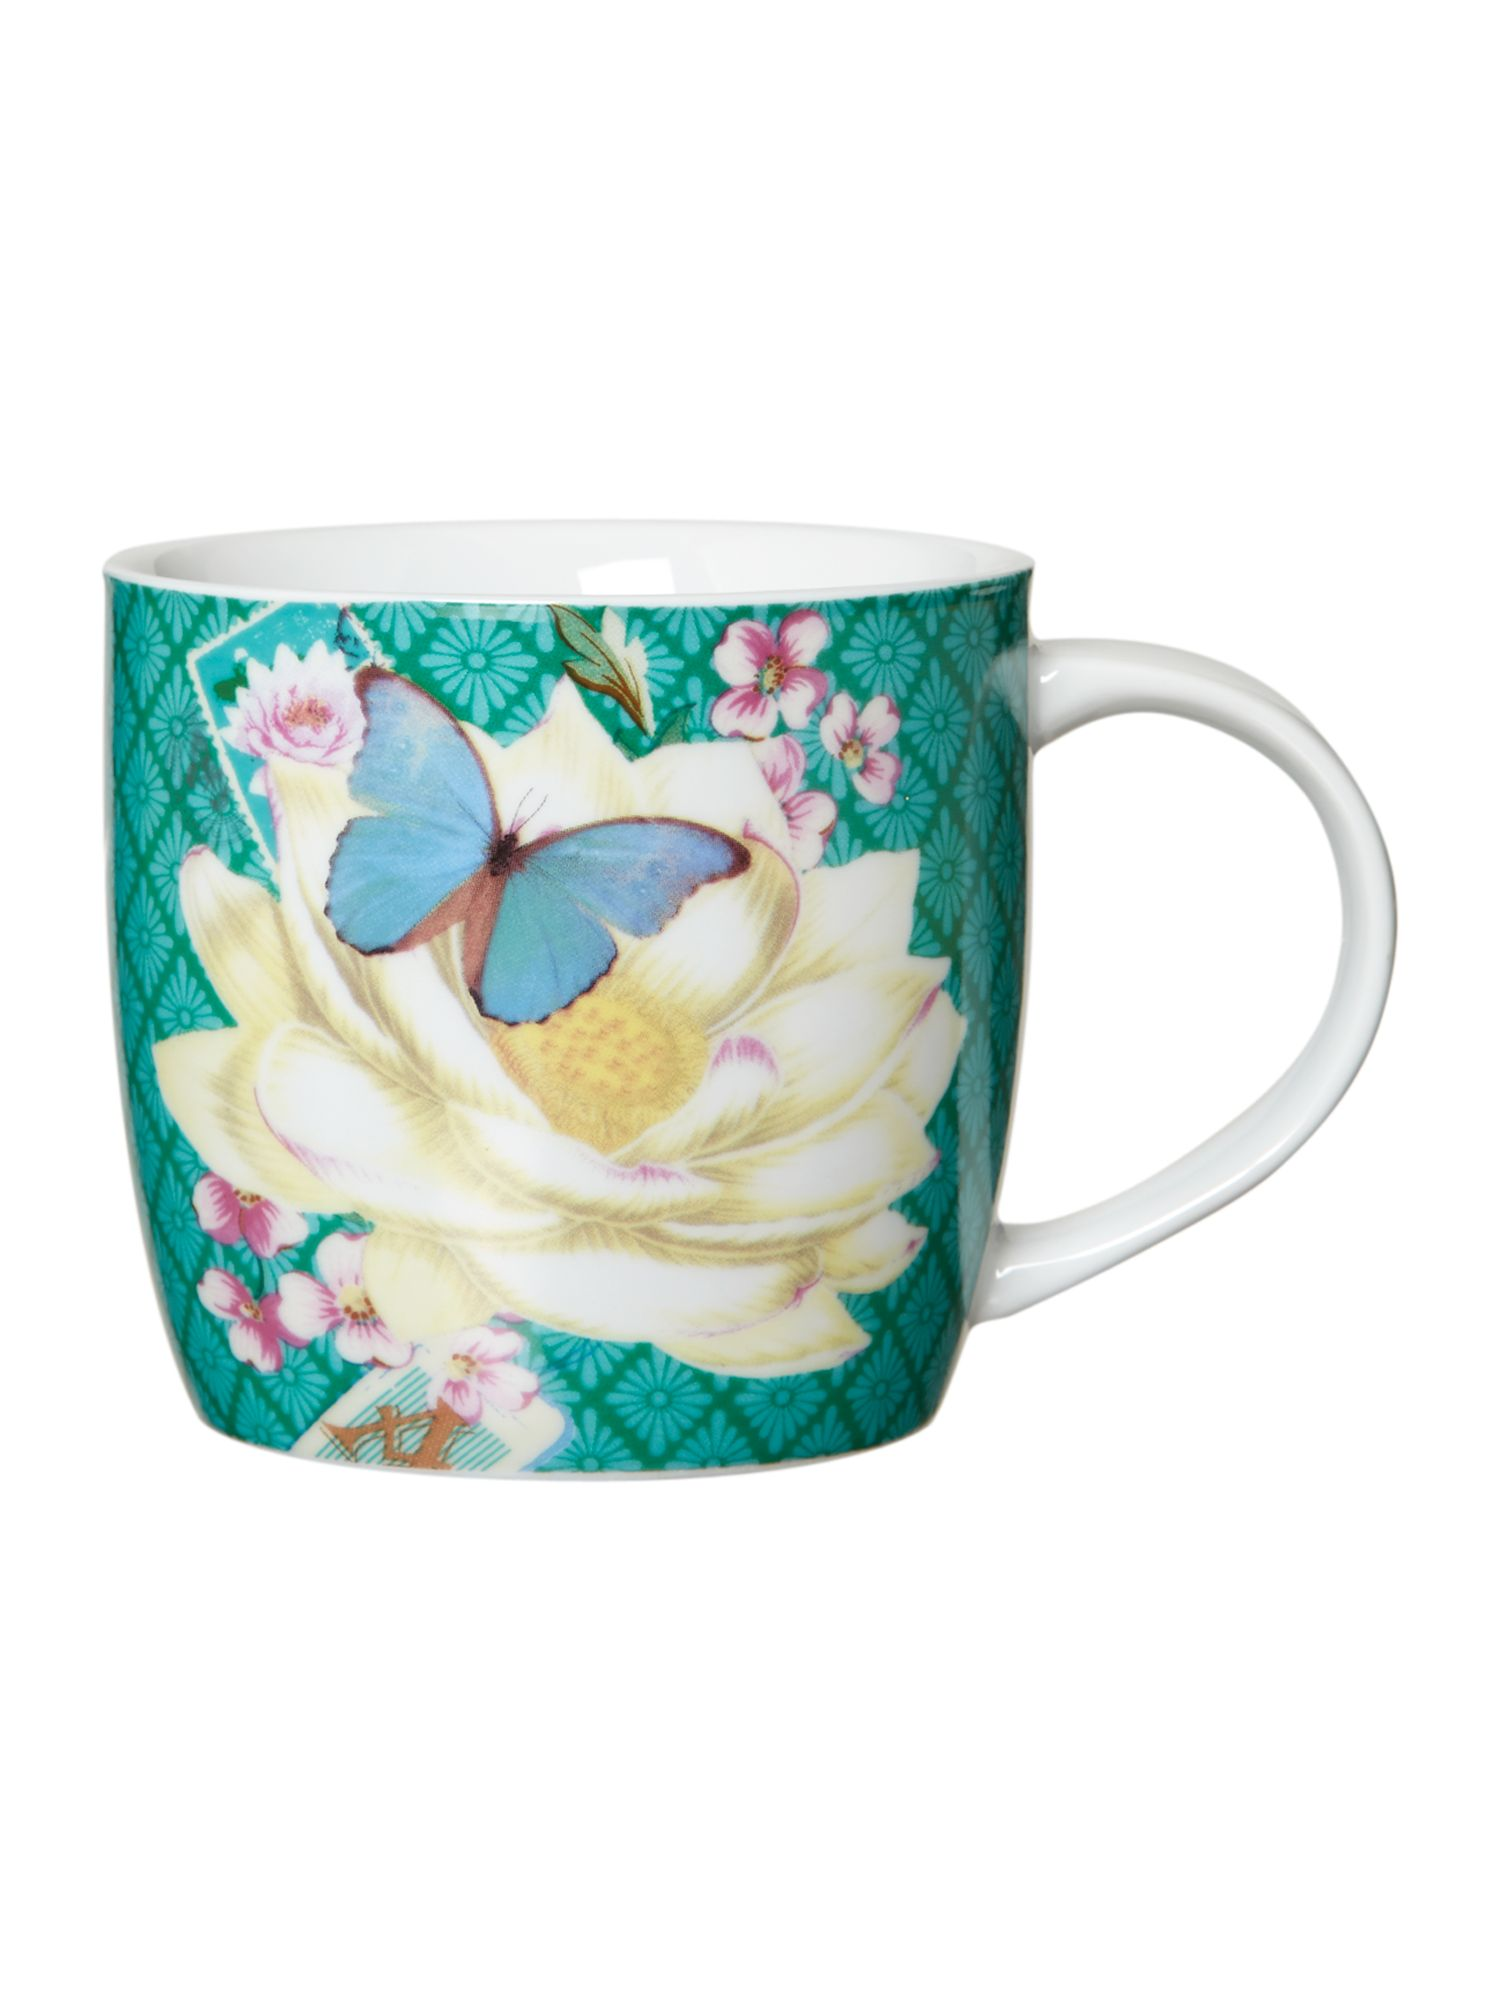 Mug in tin - green flower